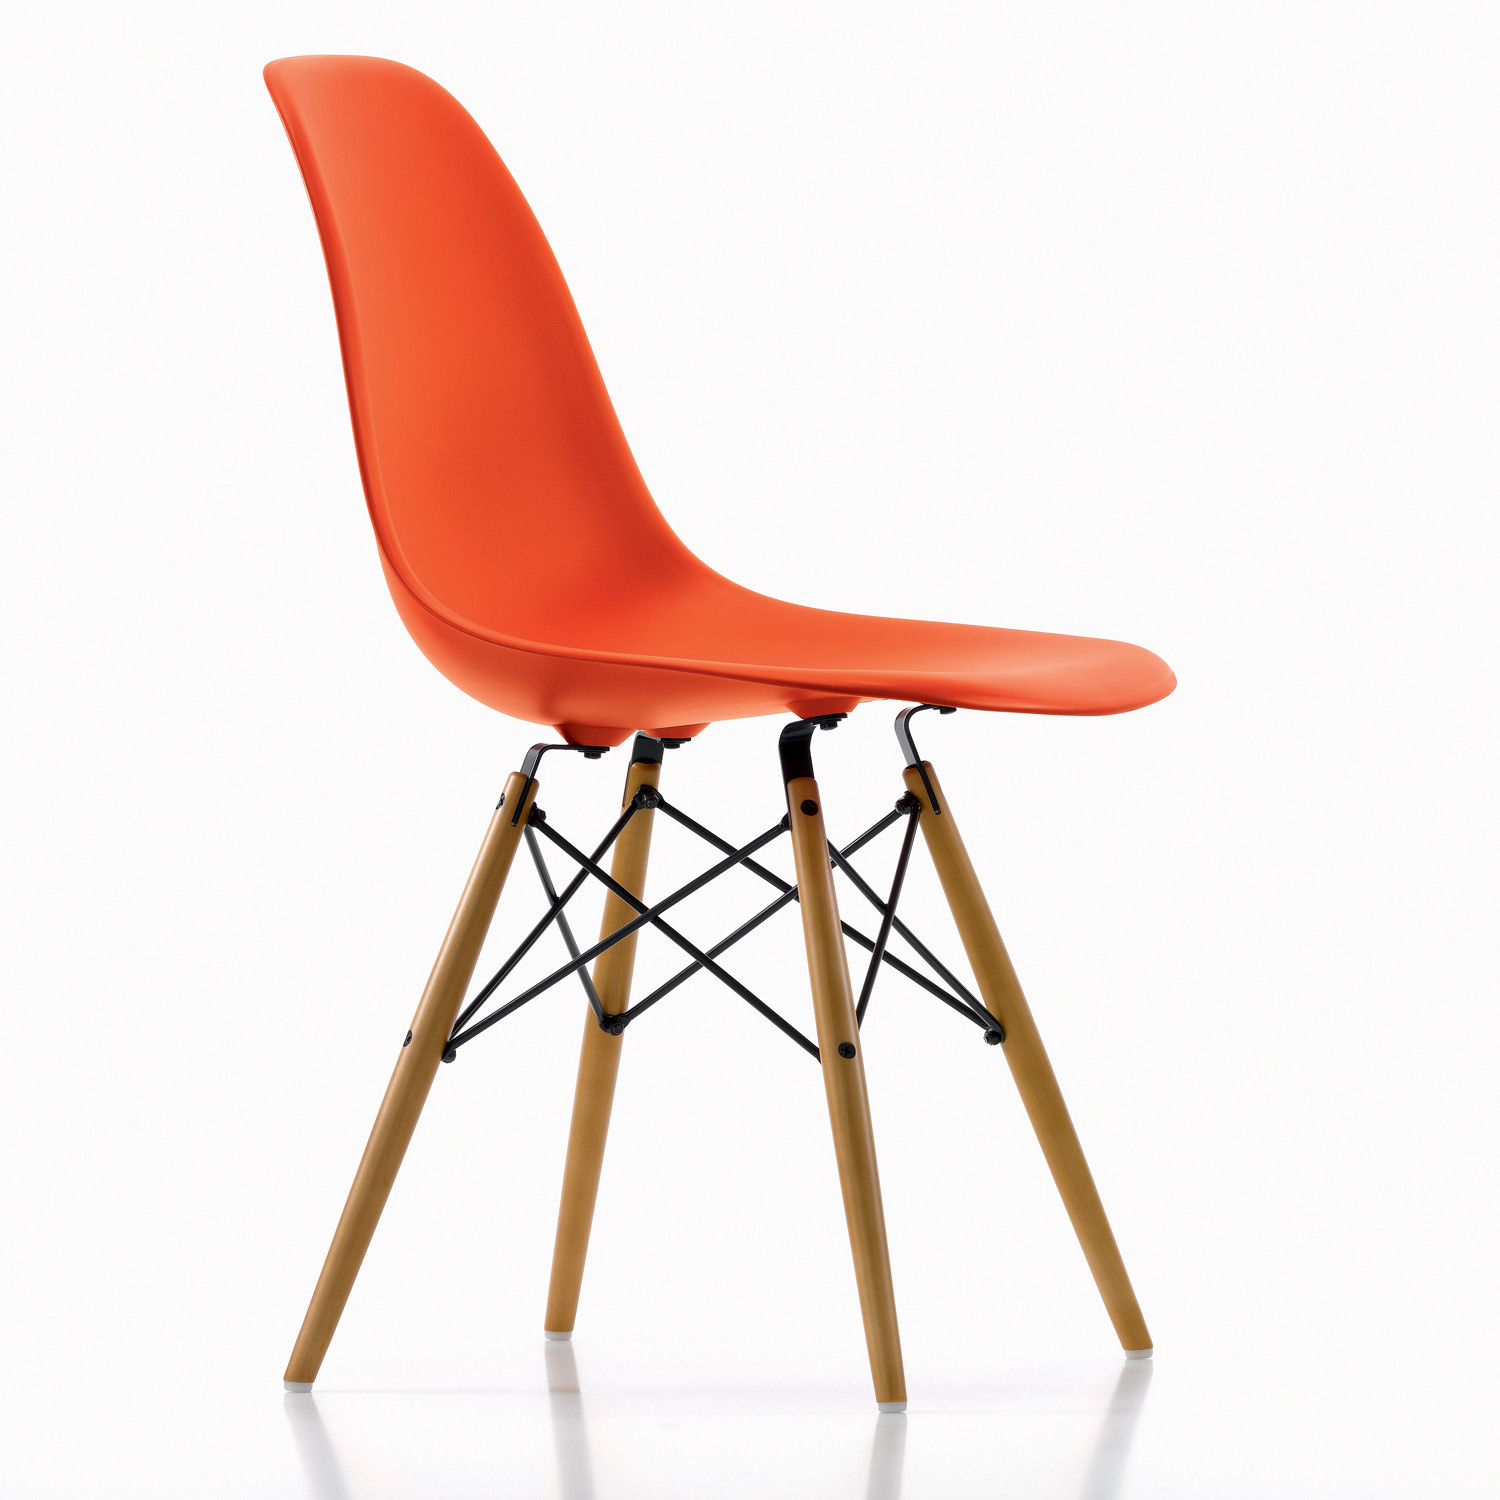 dsw eames plastic side chairs cafe breakout chairs. Black Bedroom Furniture Sets. Home Design Ideas